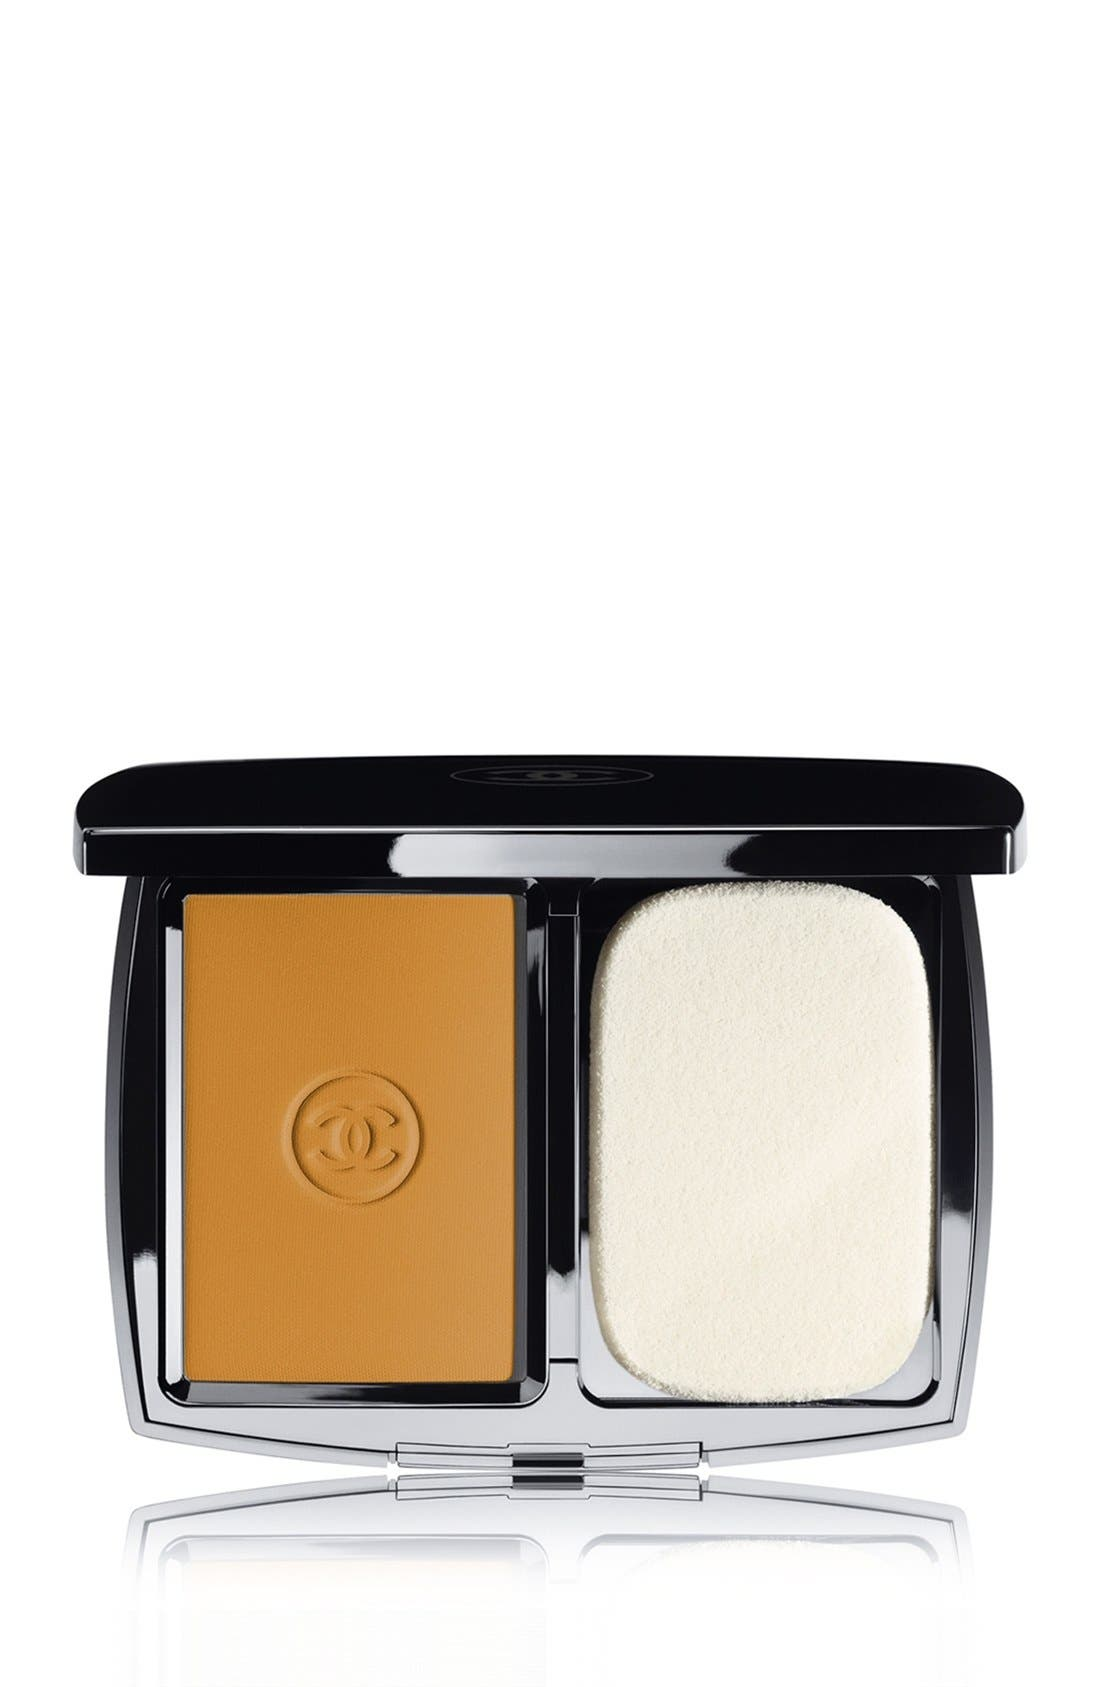 DOUBLE PERFECTION LUMIÈRE<br />Long-Wear Flawless Sunscreen Powder Makeup Broad Spectrum SPF 15,                             Main thumbnail 15, color,